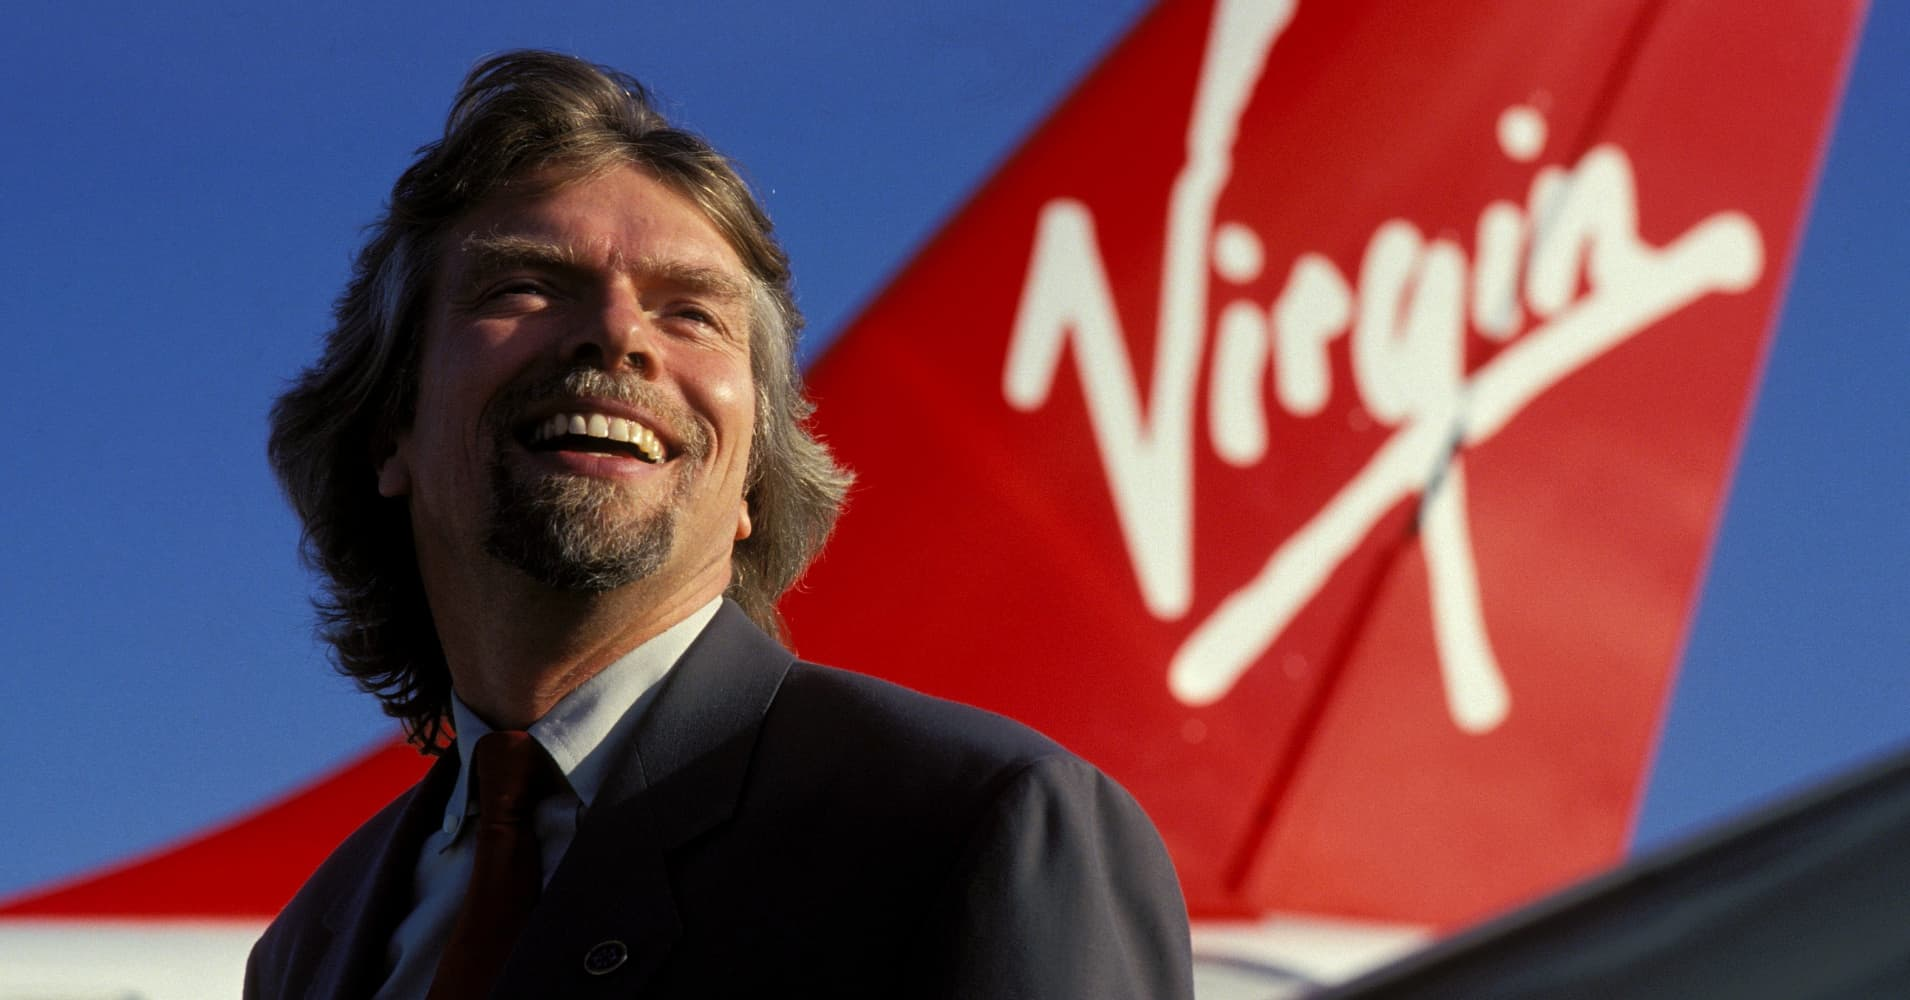 Richard Branson started Virgin Atlantic in 1984